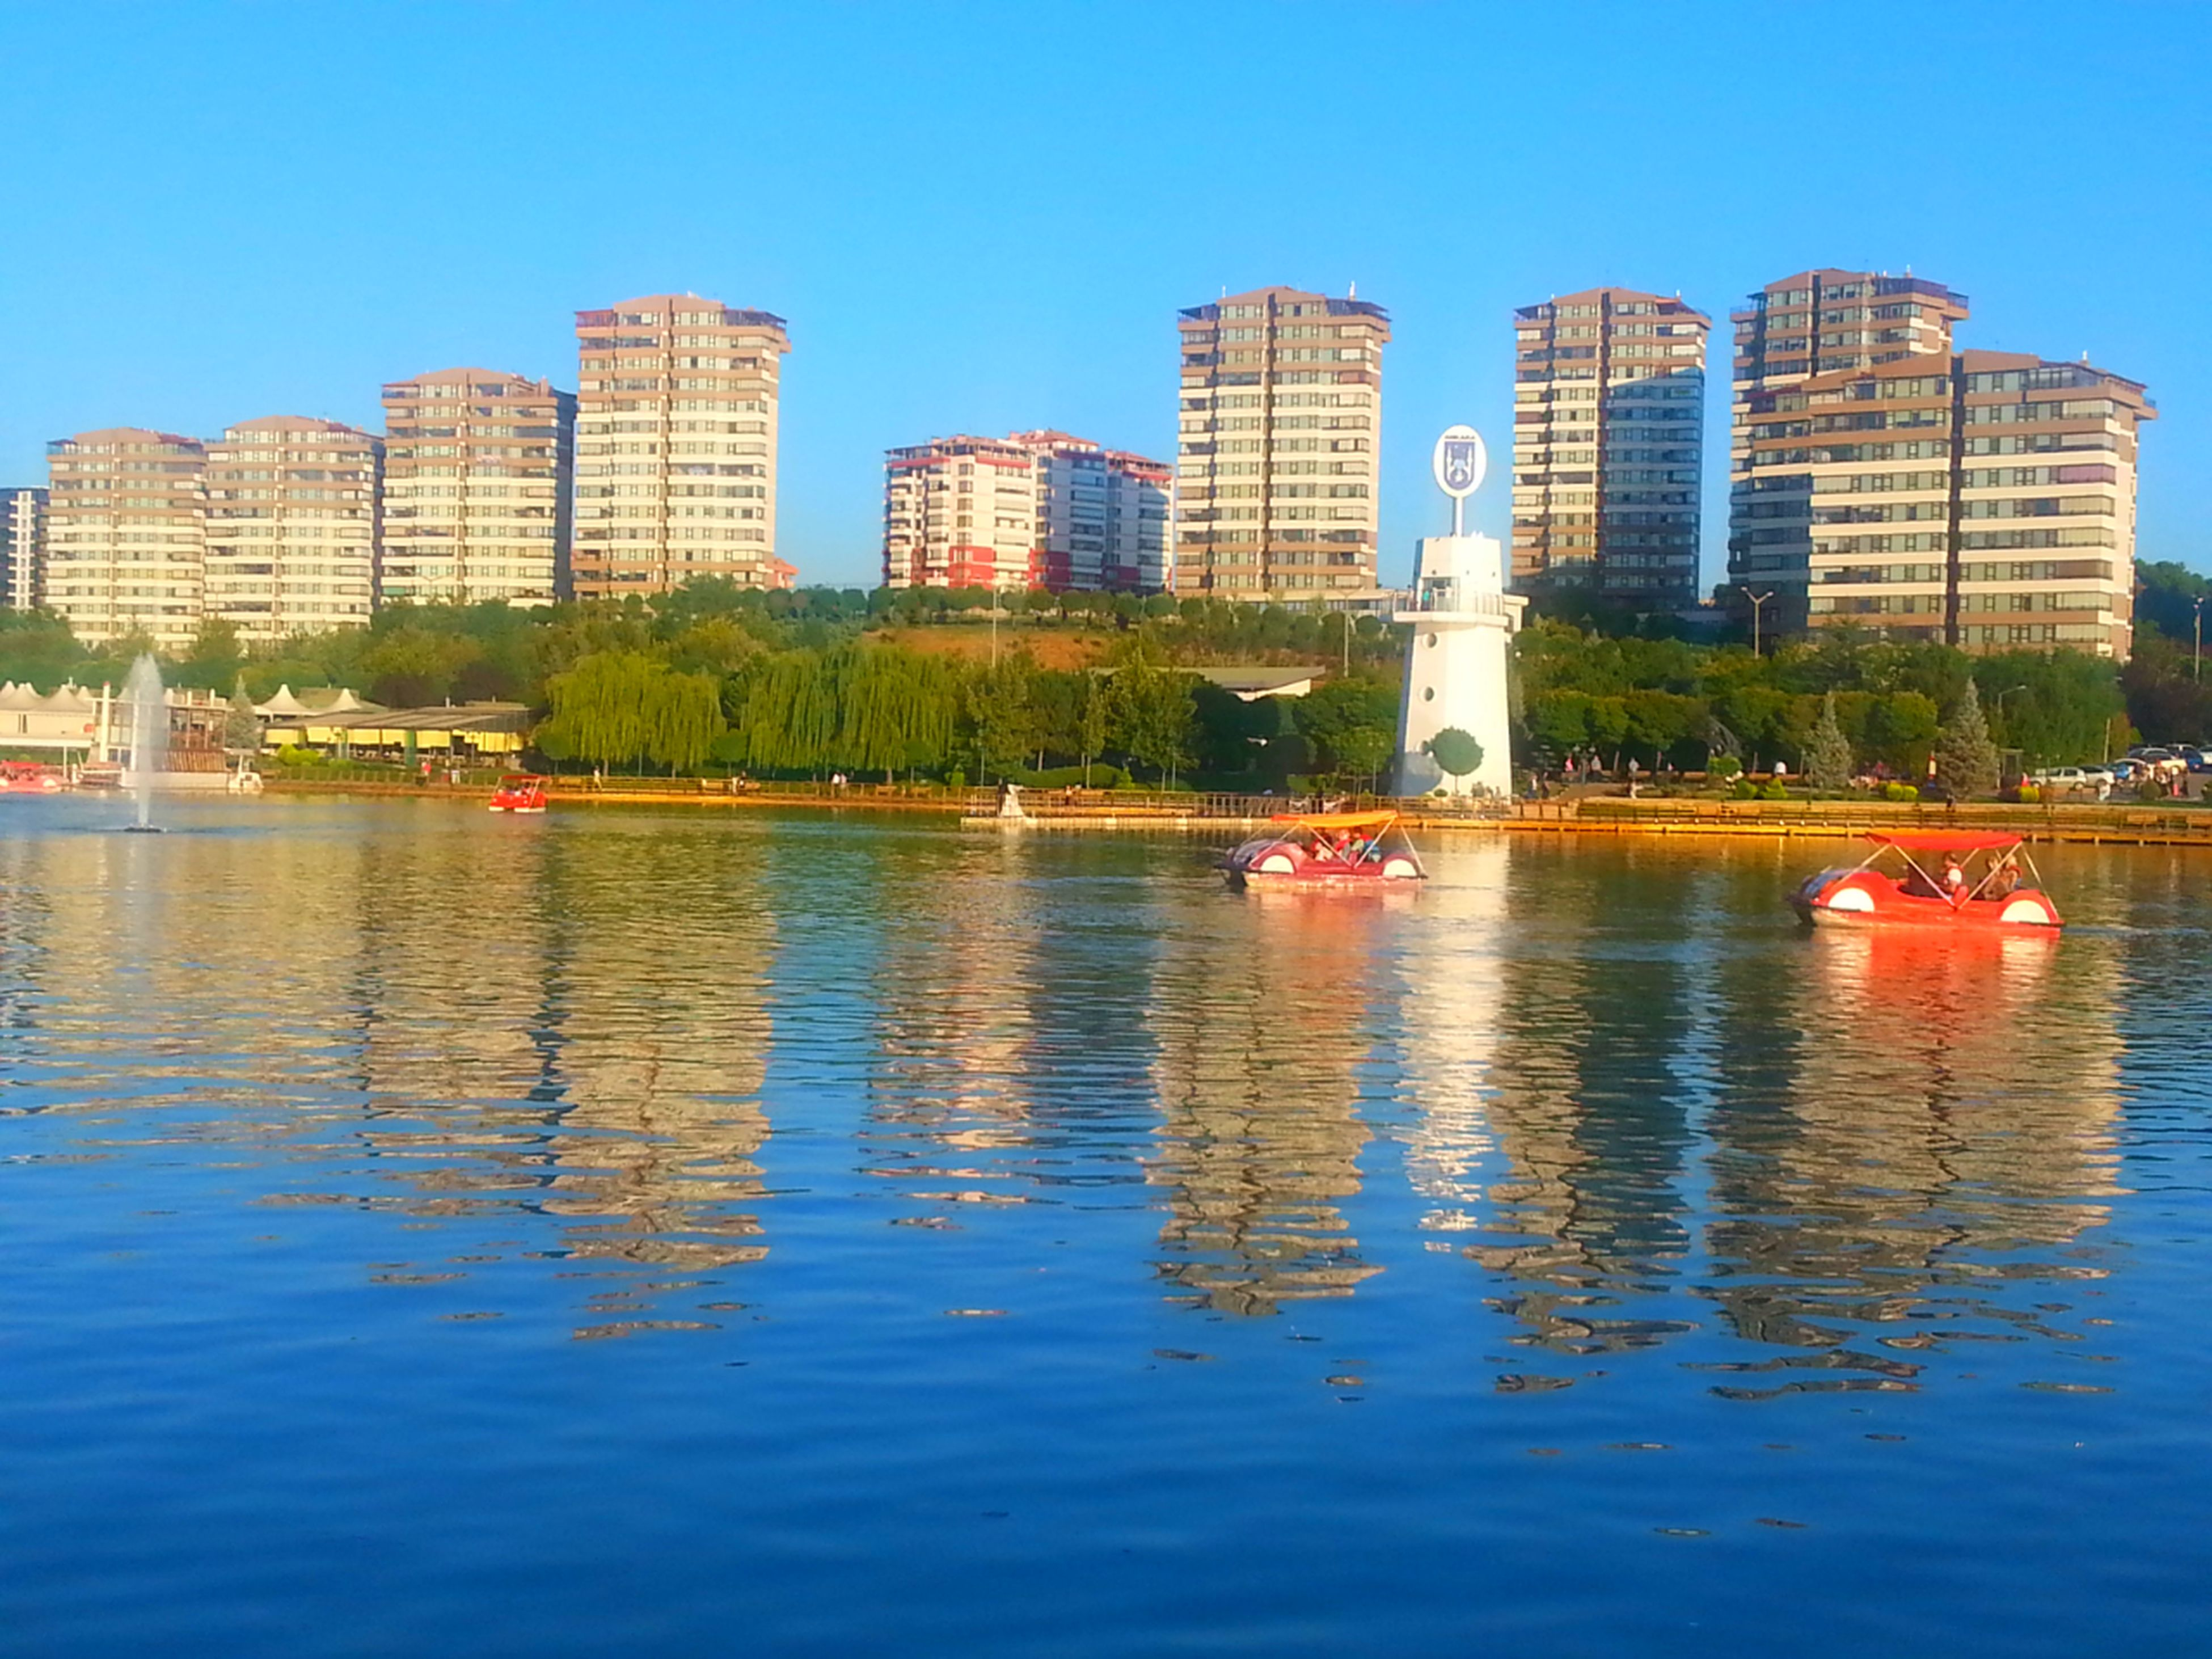 building exterior, architecture, water, built structure, waterfront, city, clear sky, river, nautical vessel, reflection, skyscraper, tree, blue, boat, transportation, tower, rippled, lake, urban skyline, office building